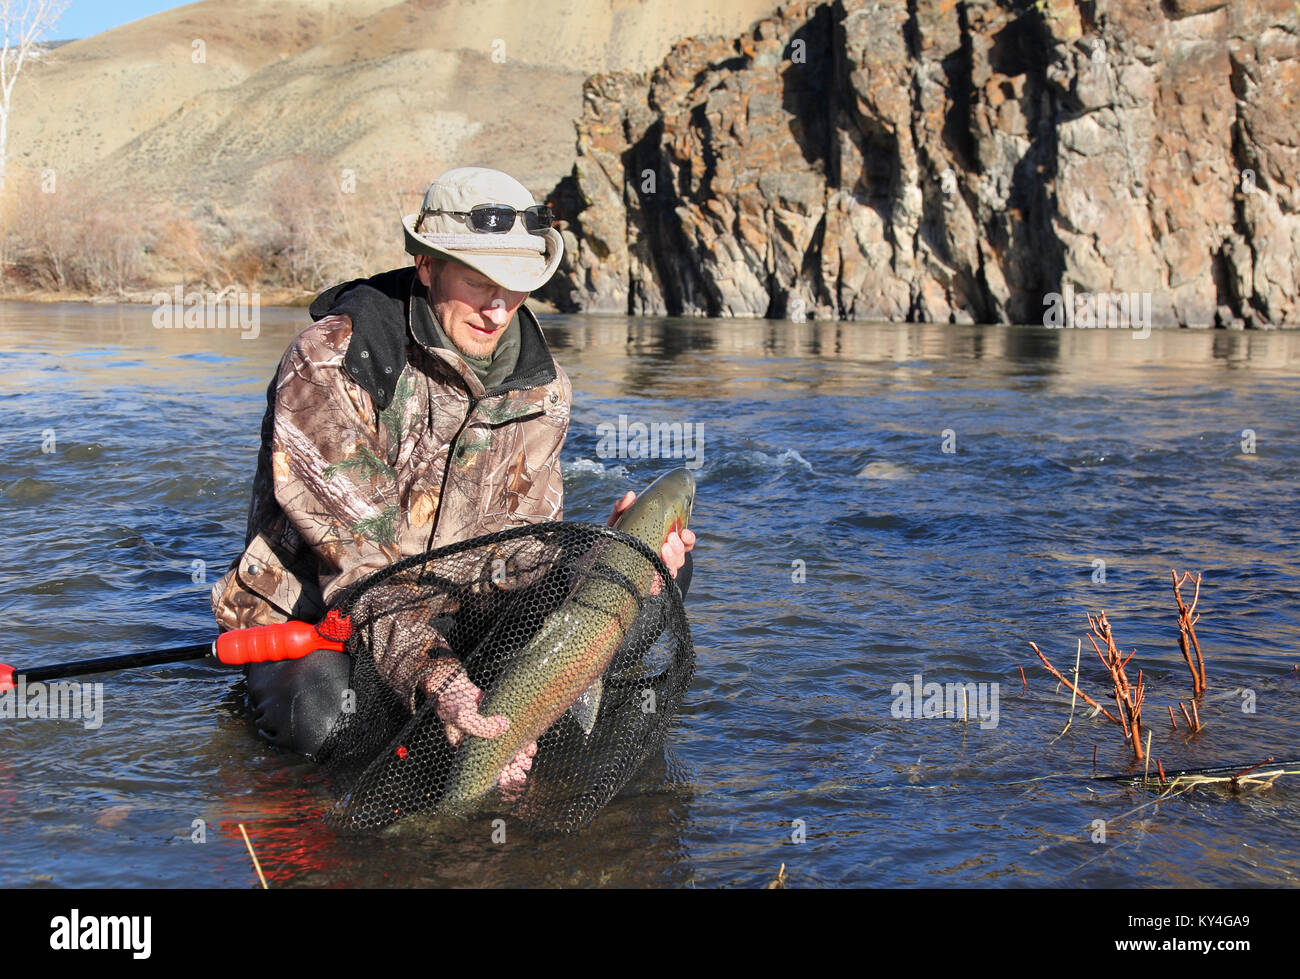 man catching a large steelhead trout - Stock Image